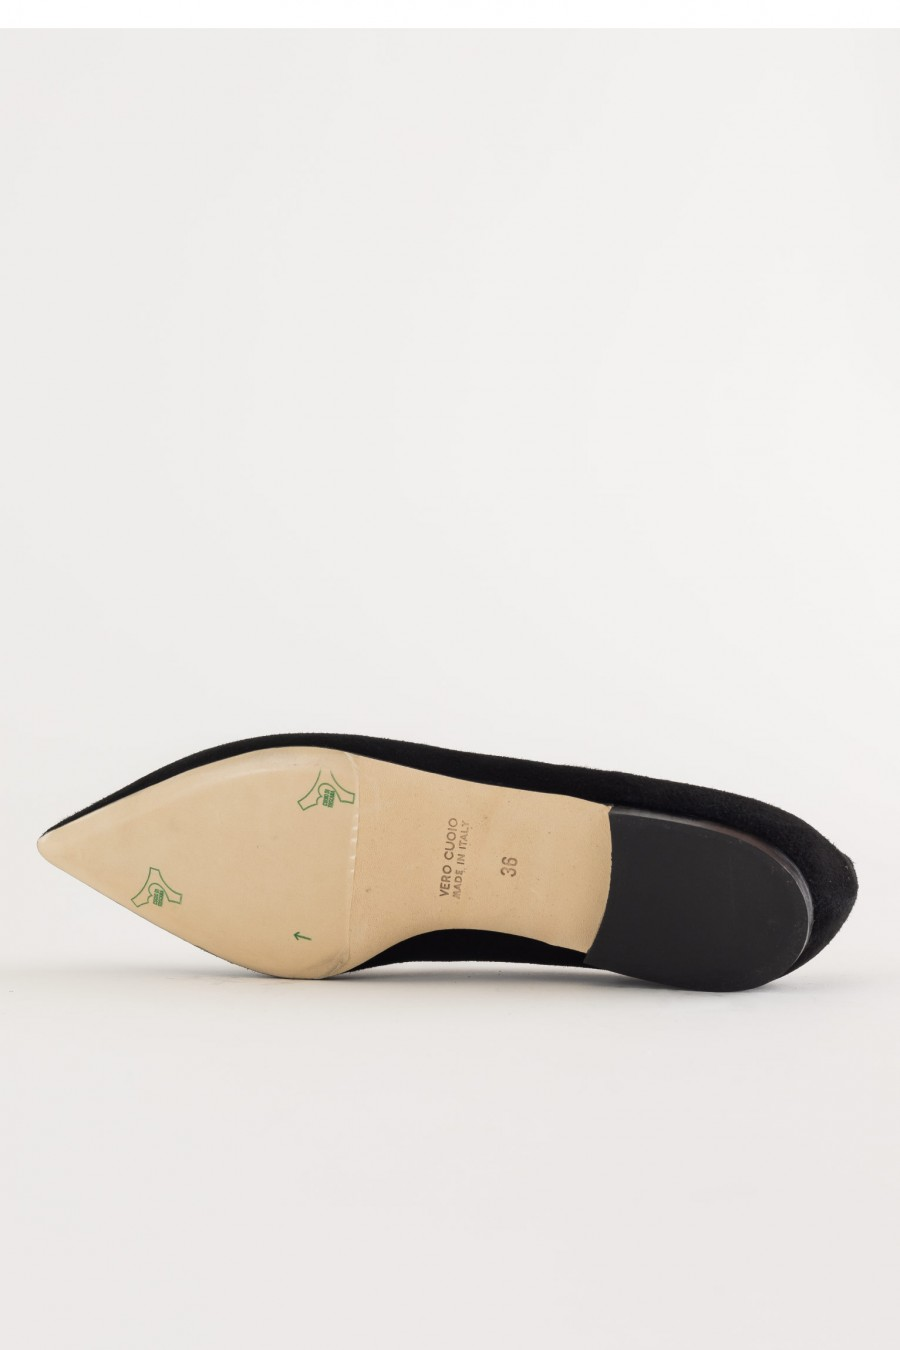 Made in Italy ballerina shoes